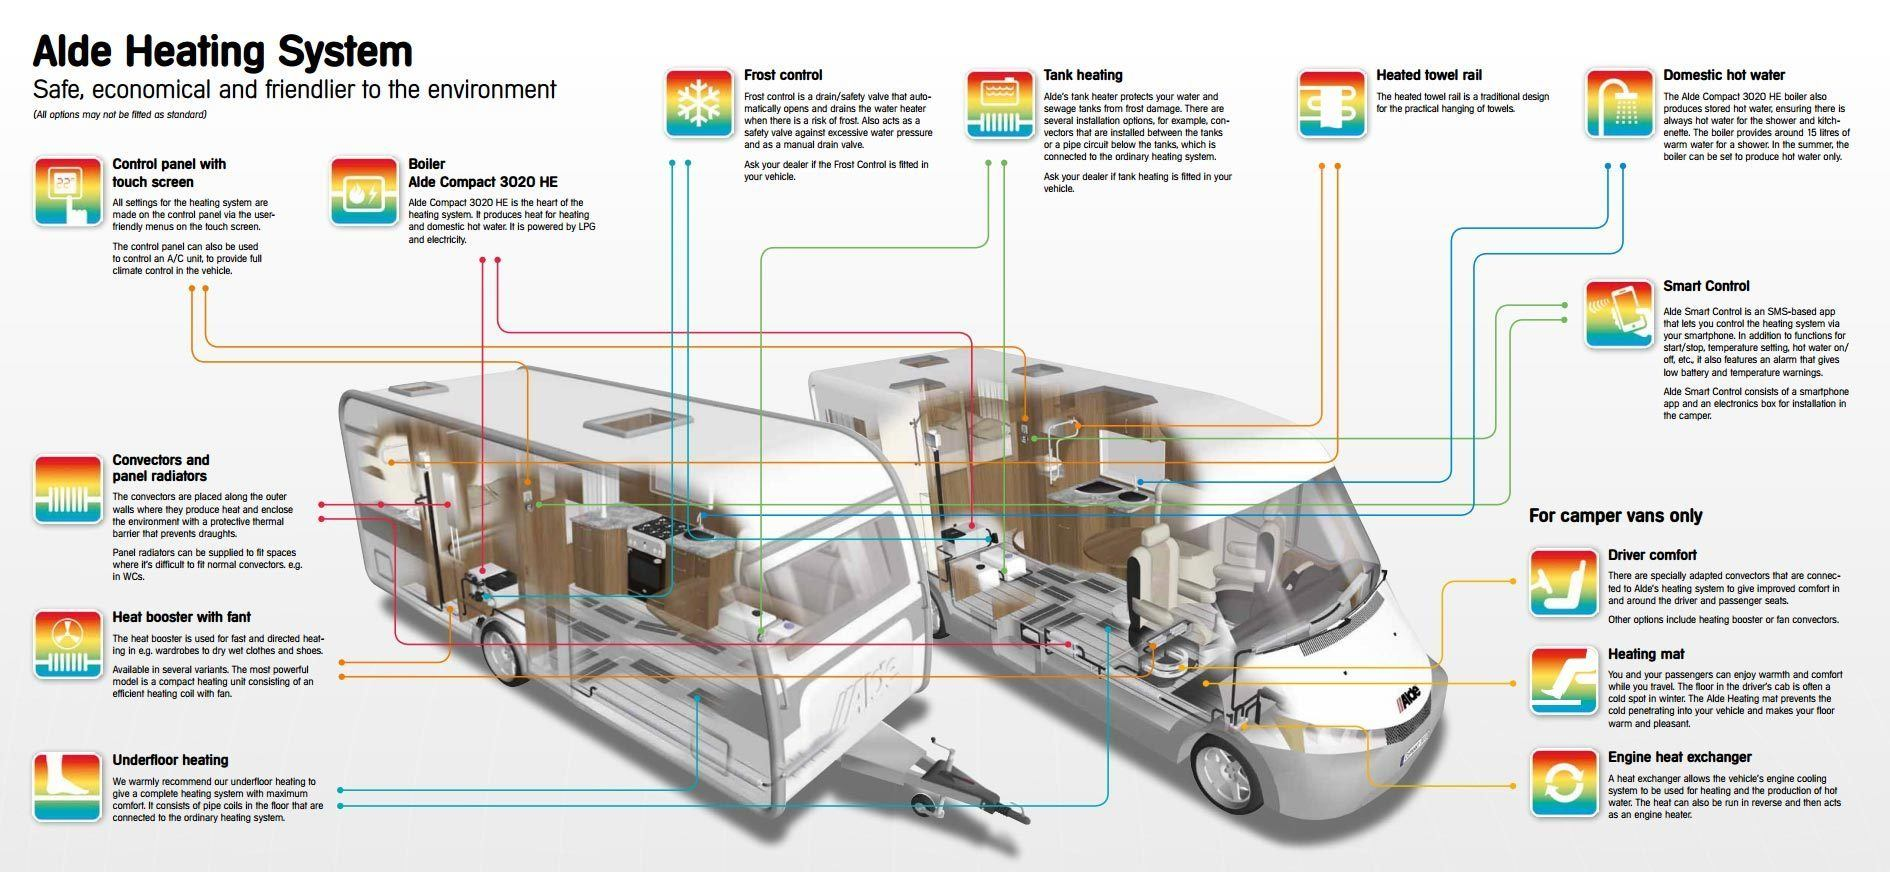 Alde Heating in Caravans and Motorhomes | Leisureshopdirect Caravan Blog